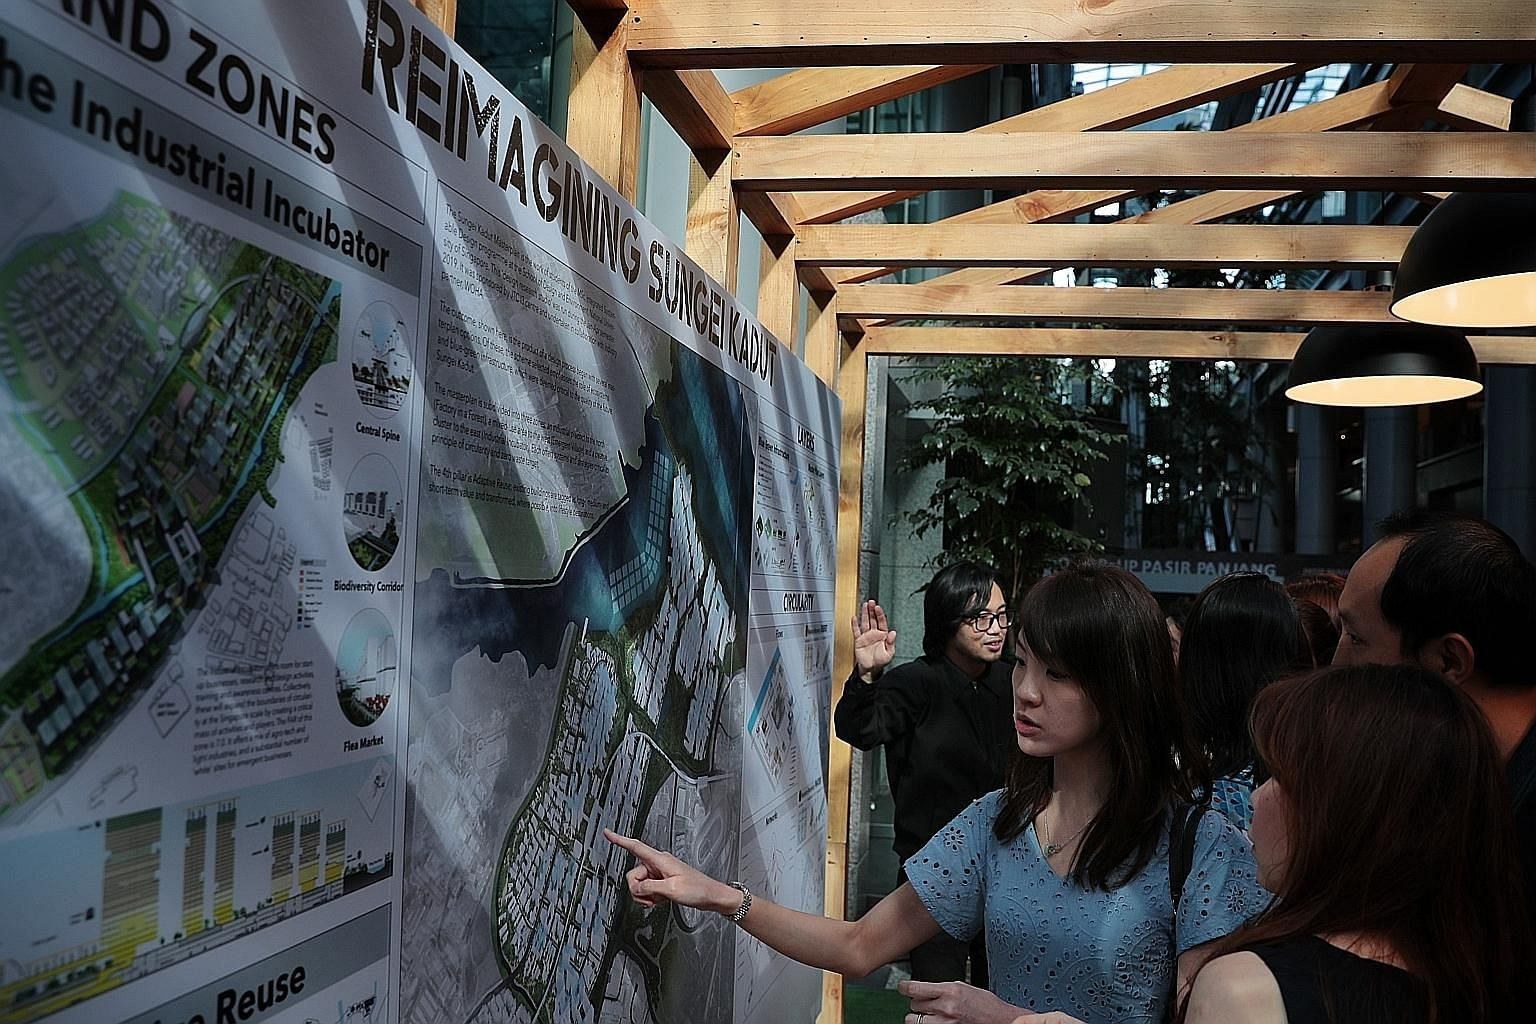 The masterplan exhibition for the rejuvenation of the 500ha Sungei Kadut Eco-District, held at the Urban Redevelopment Authority Centre, is open to the public till Feb 19.